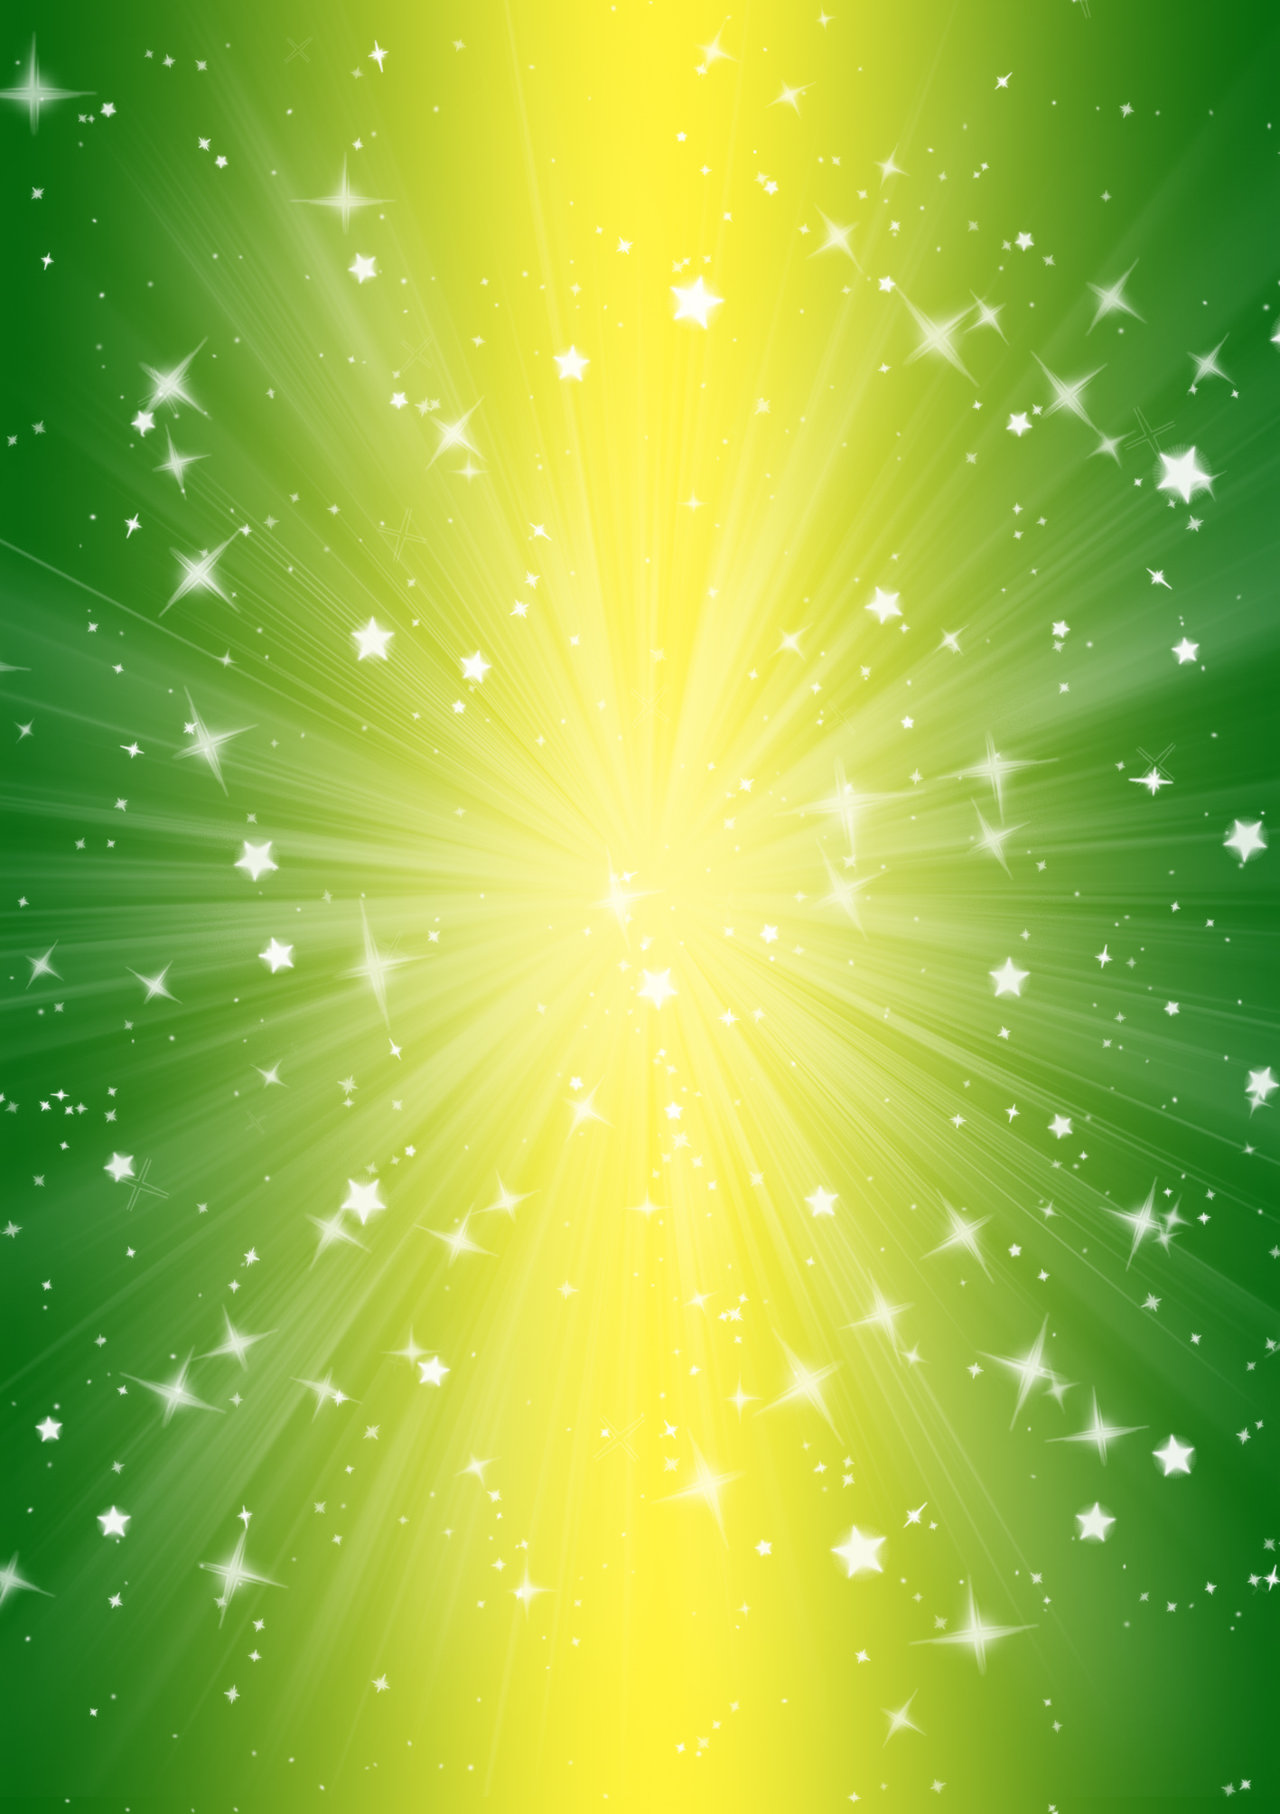 Yellow And Green Living Room Decor: E-mail Tarot Reading Offerings